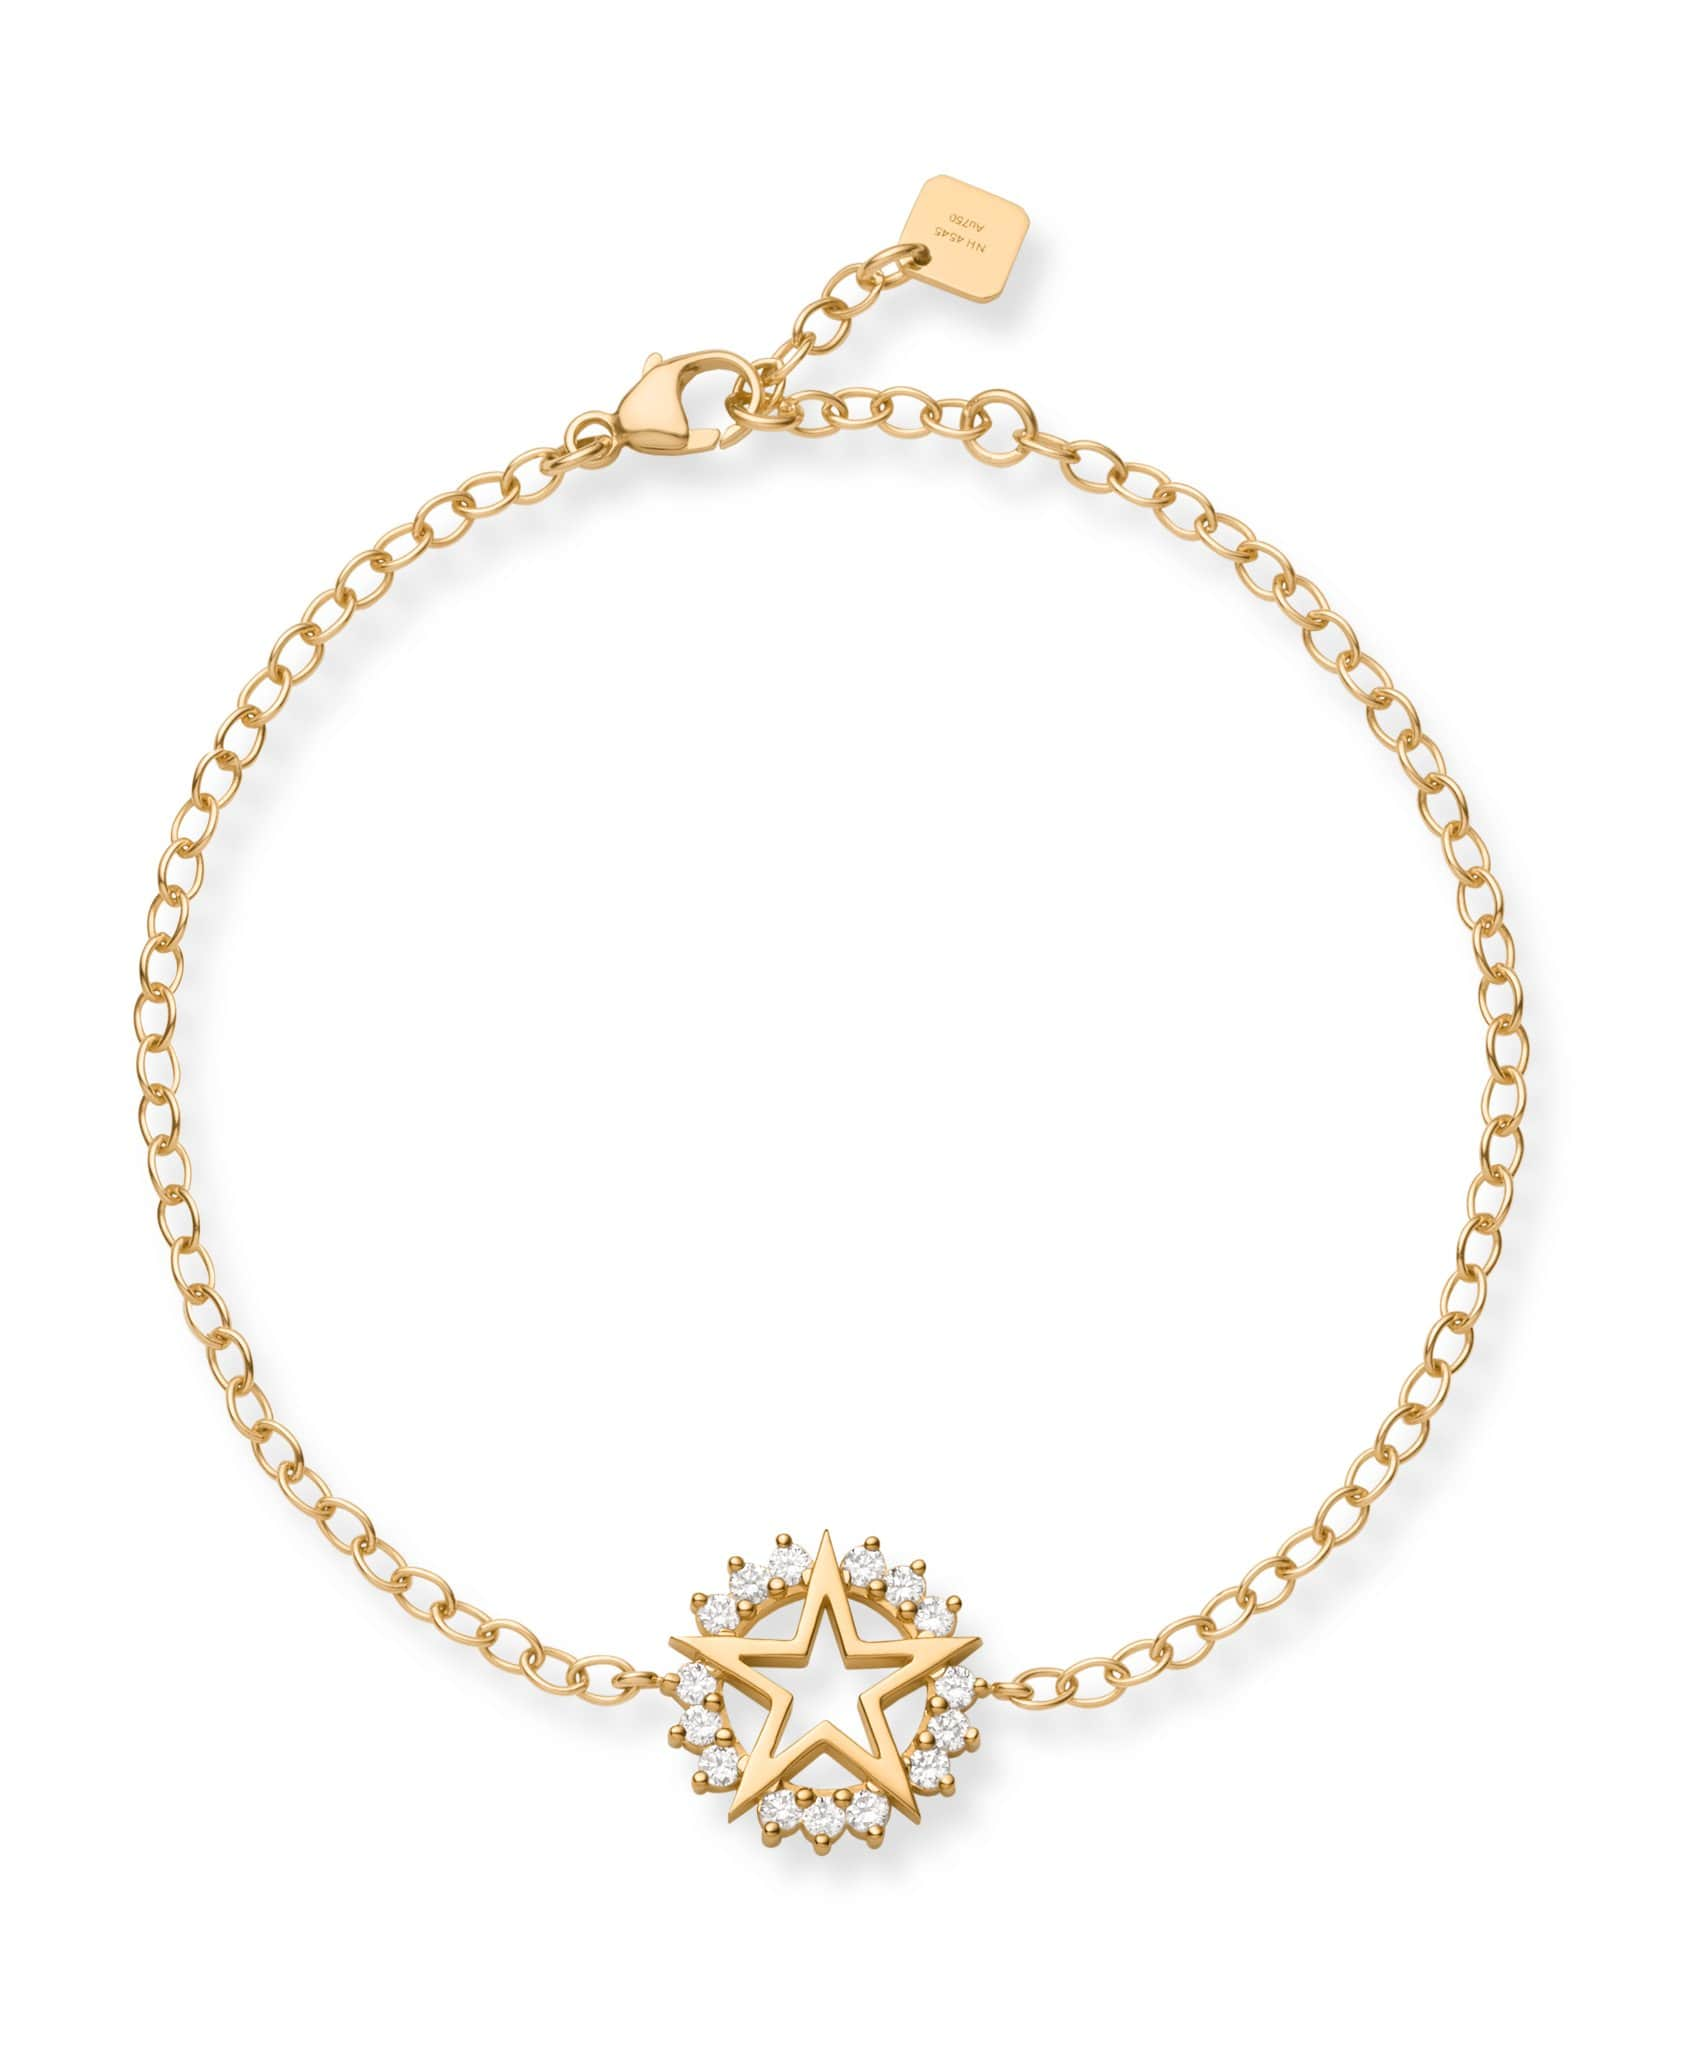 Medium Star Bracelet: Discover Luxury Fine Jewelry | Nouvel Heritage